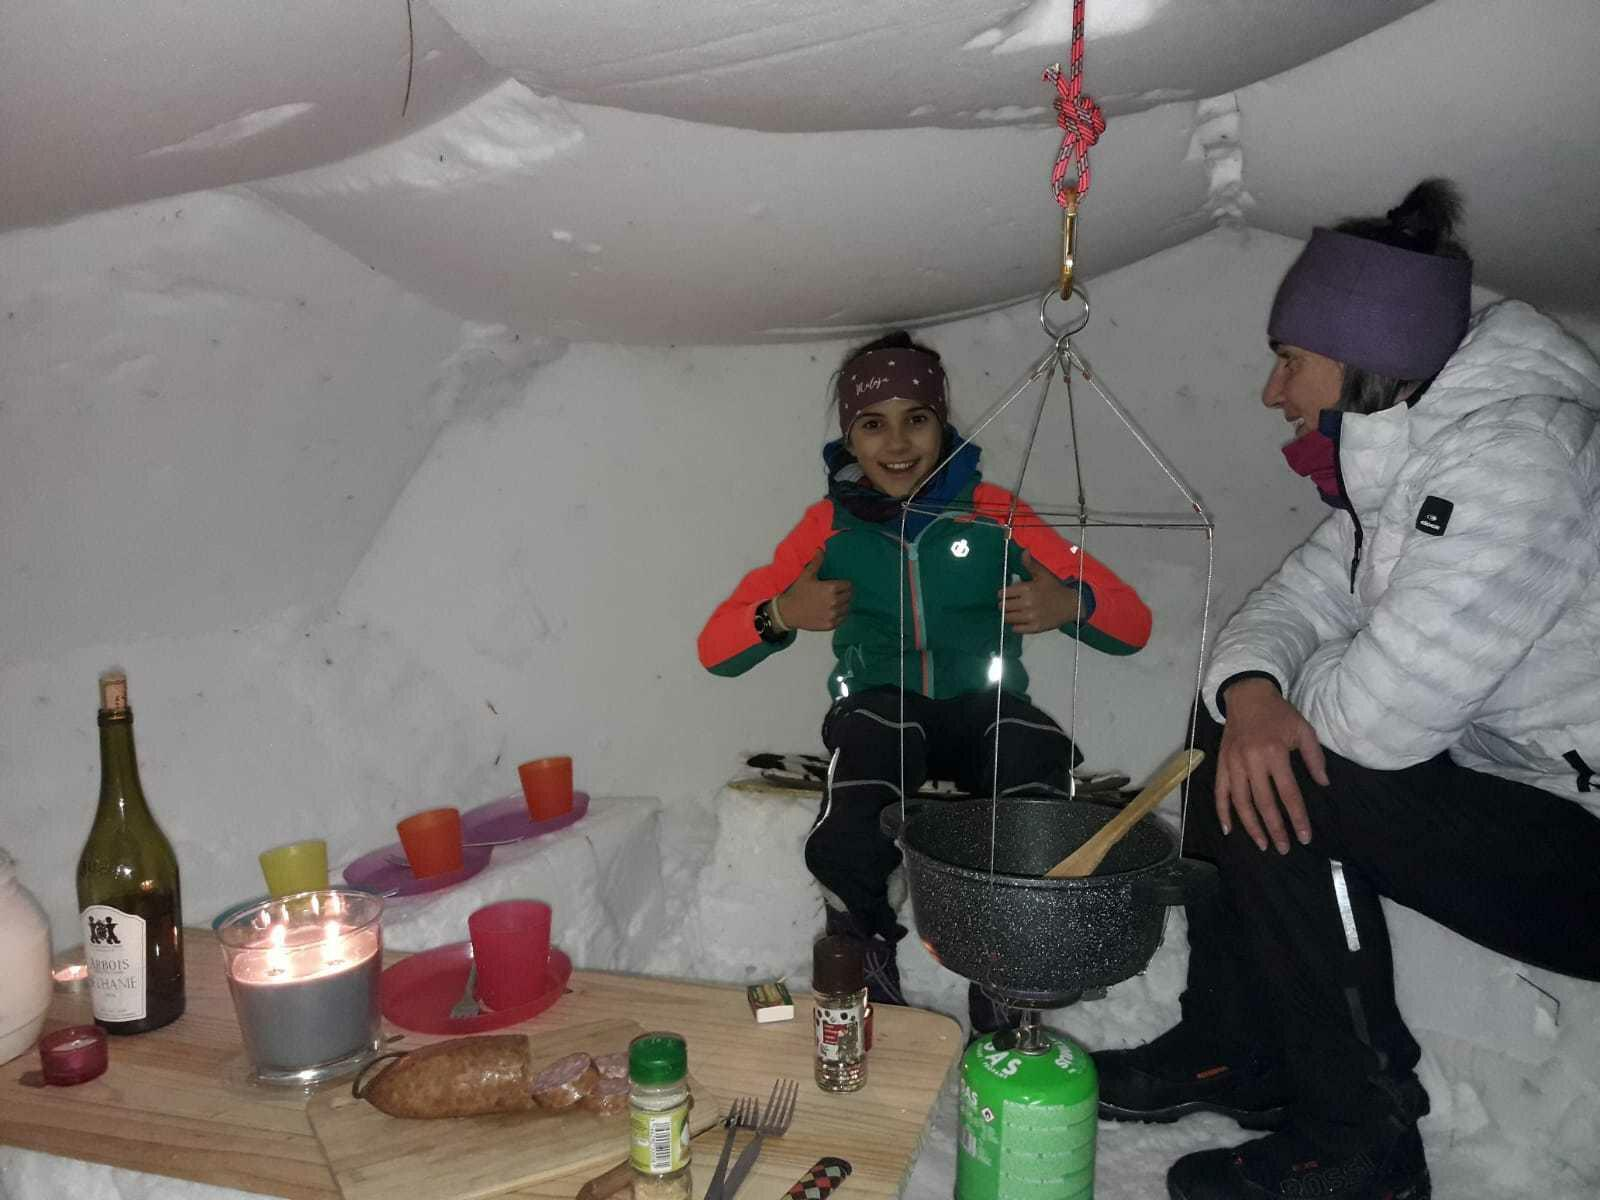 fondue_igloo_ski_backcountry  Ⓒ